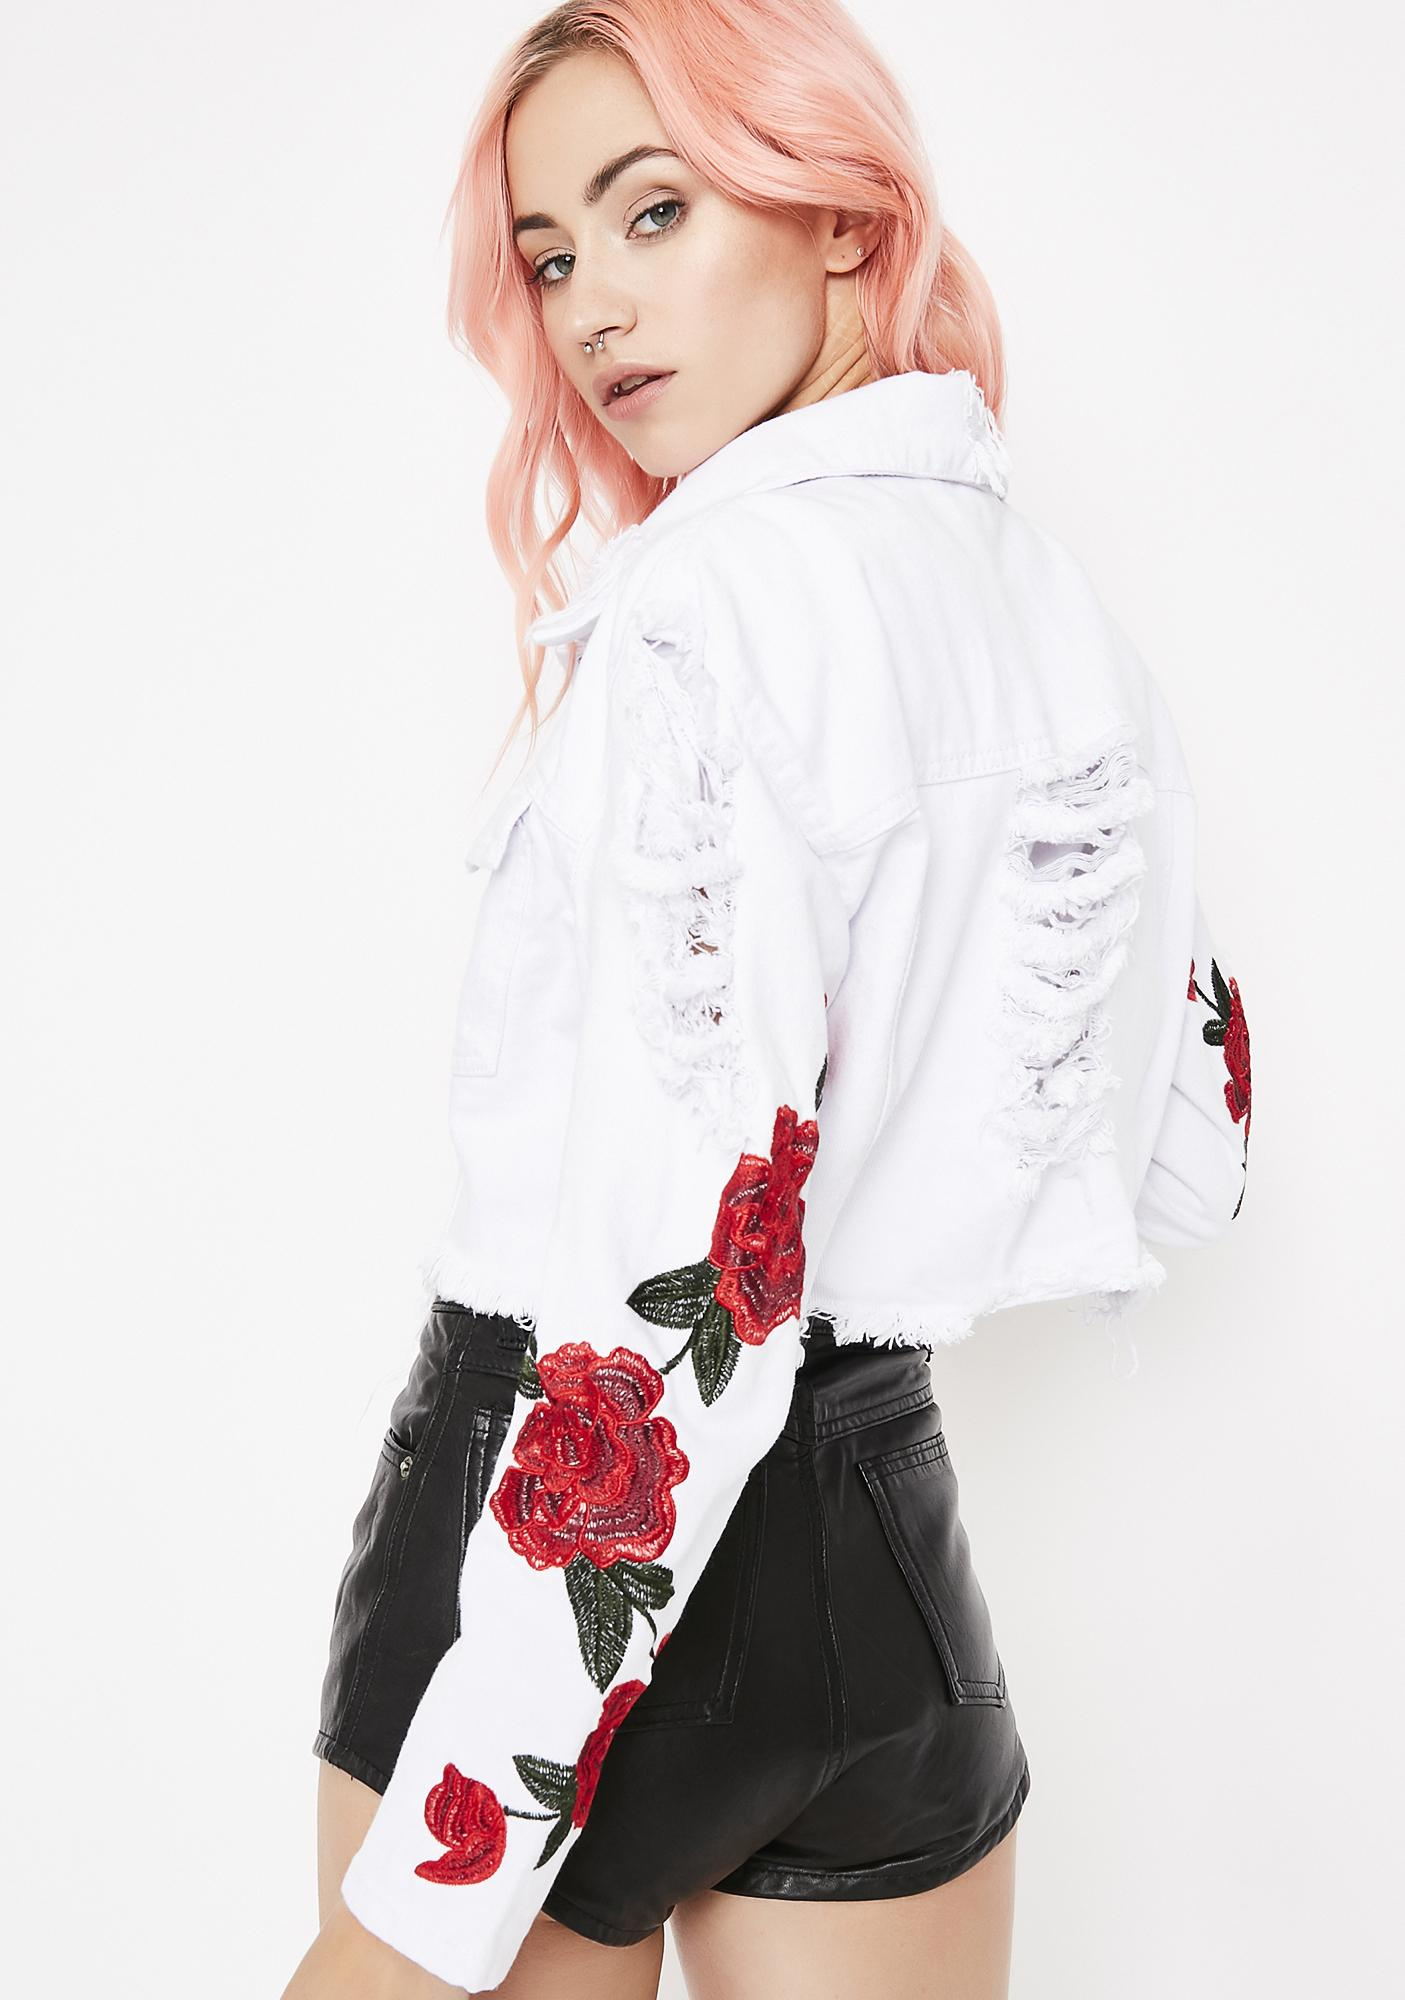 Rosemantic Distressed Jacket by Settle Down